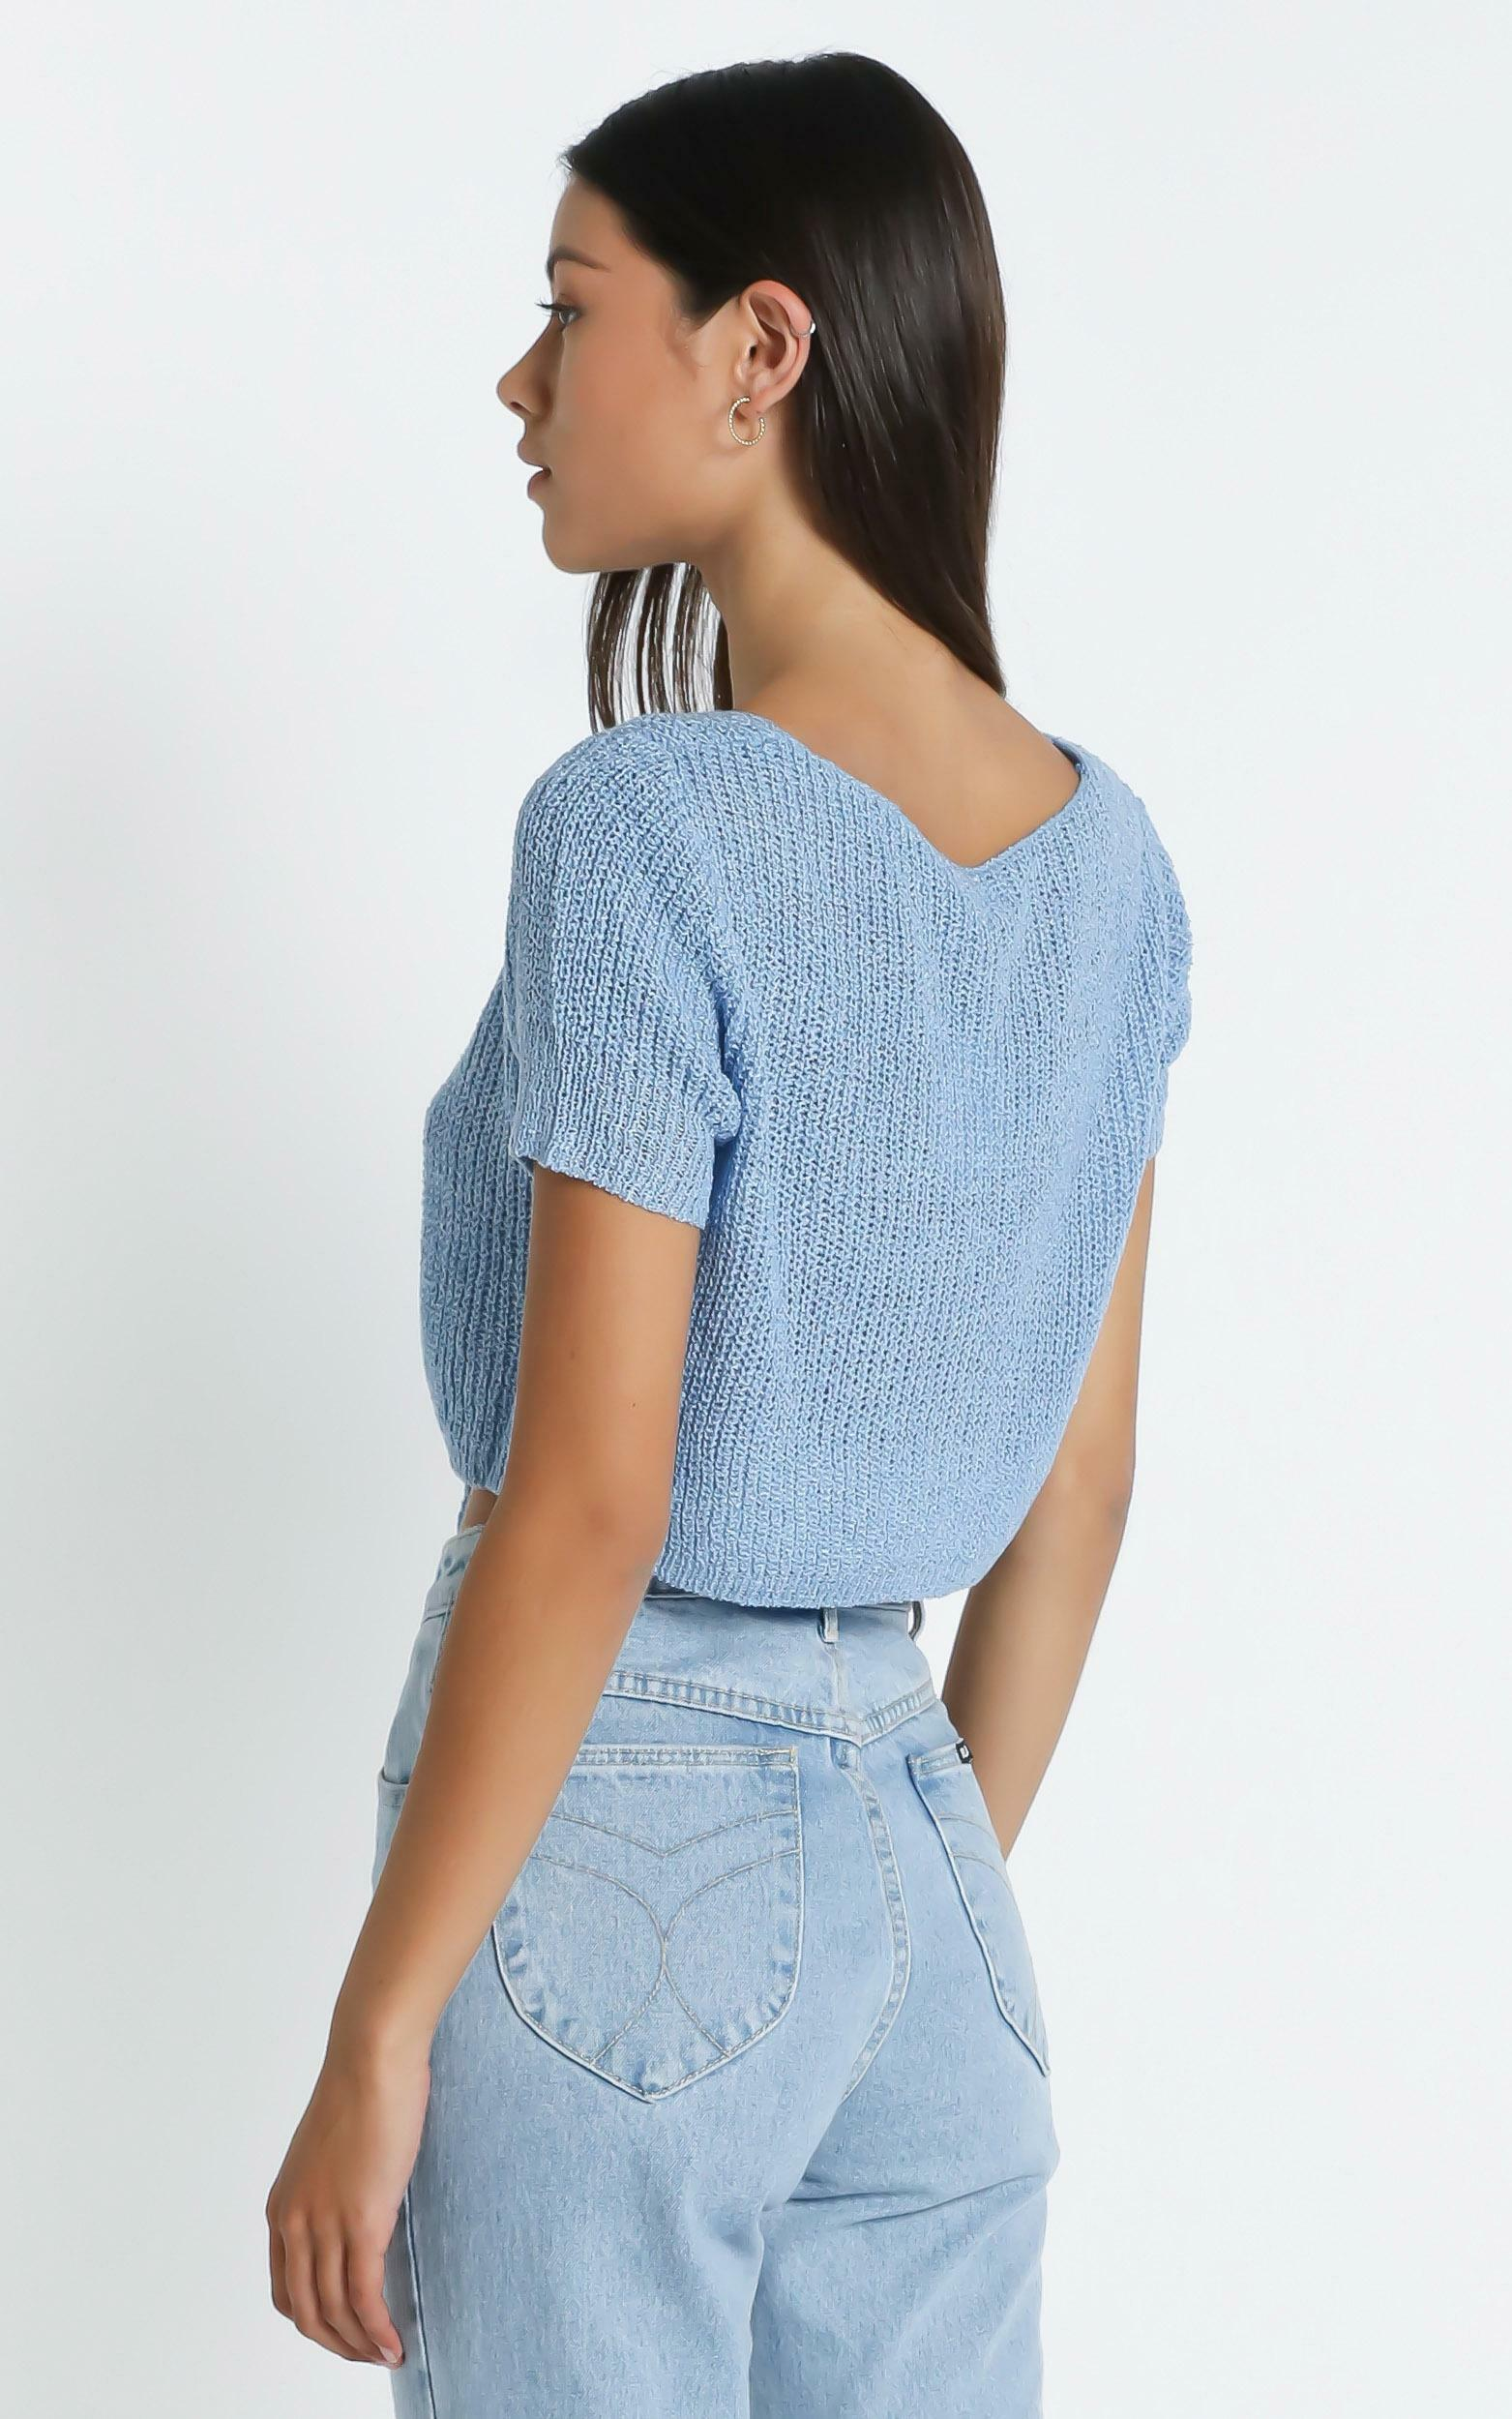 Bronxville Top in Blue - S/M, Blue, hi-res image number null